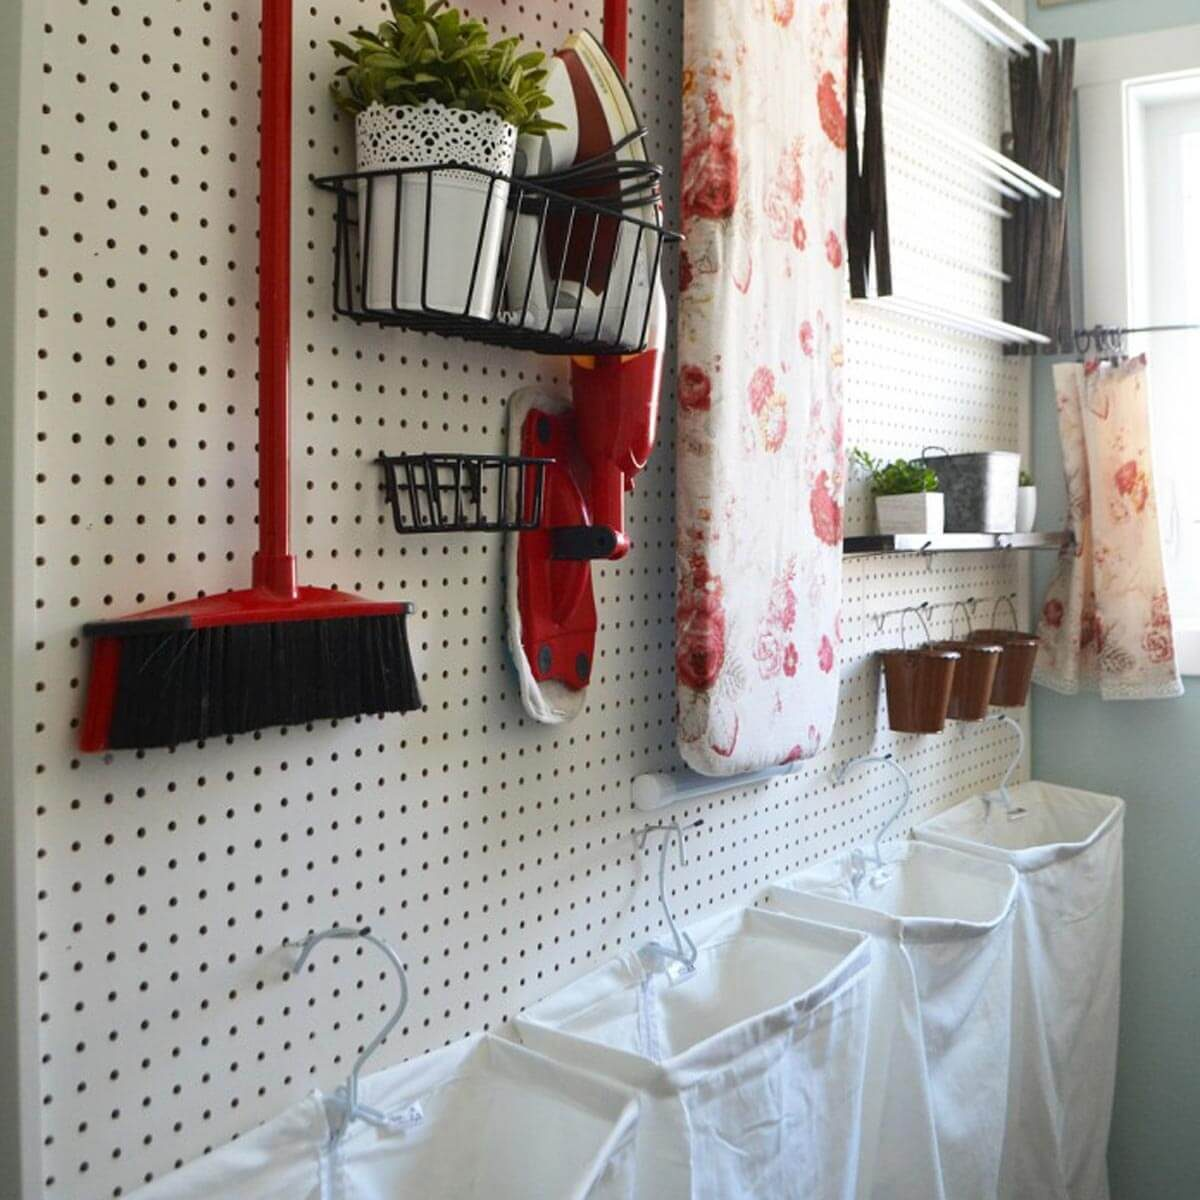 Vintage-Red-Aqua-Pegboard-Laundry-Room-Design-Ideas-7-714x1000 hanging hampers